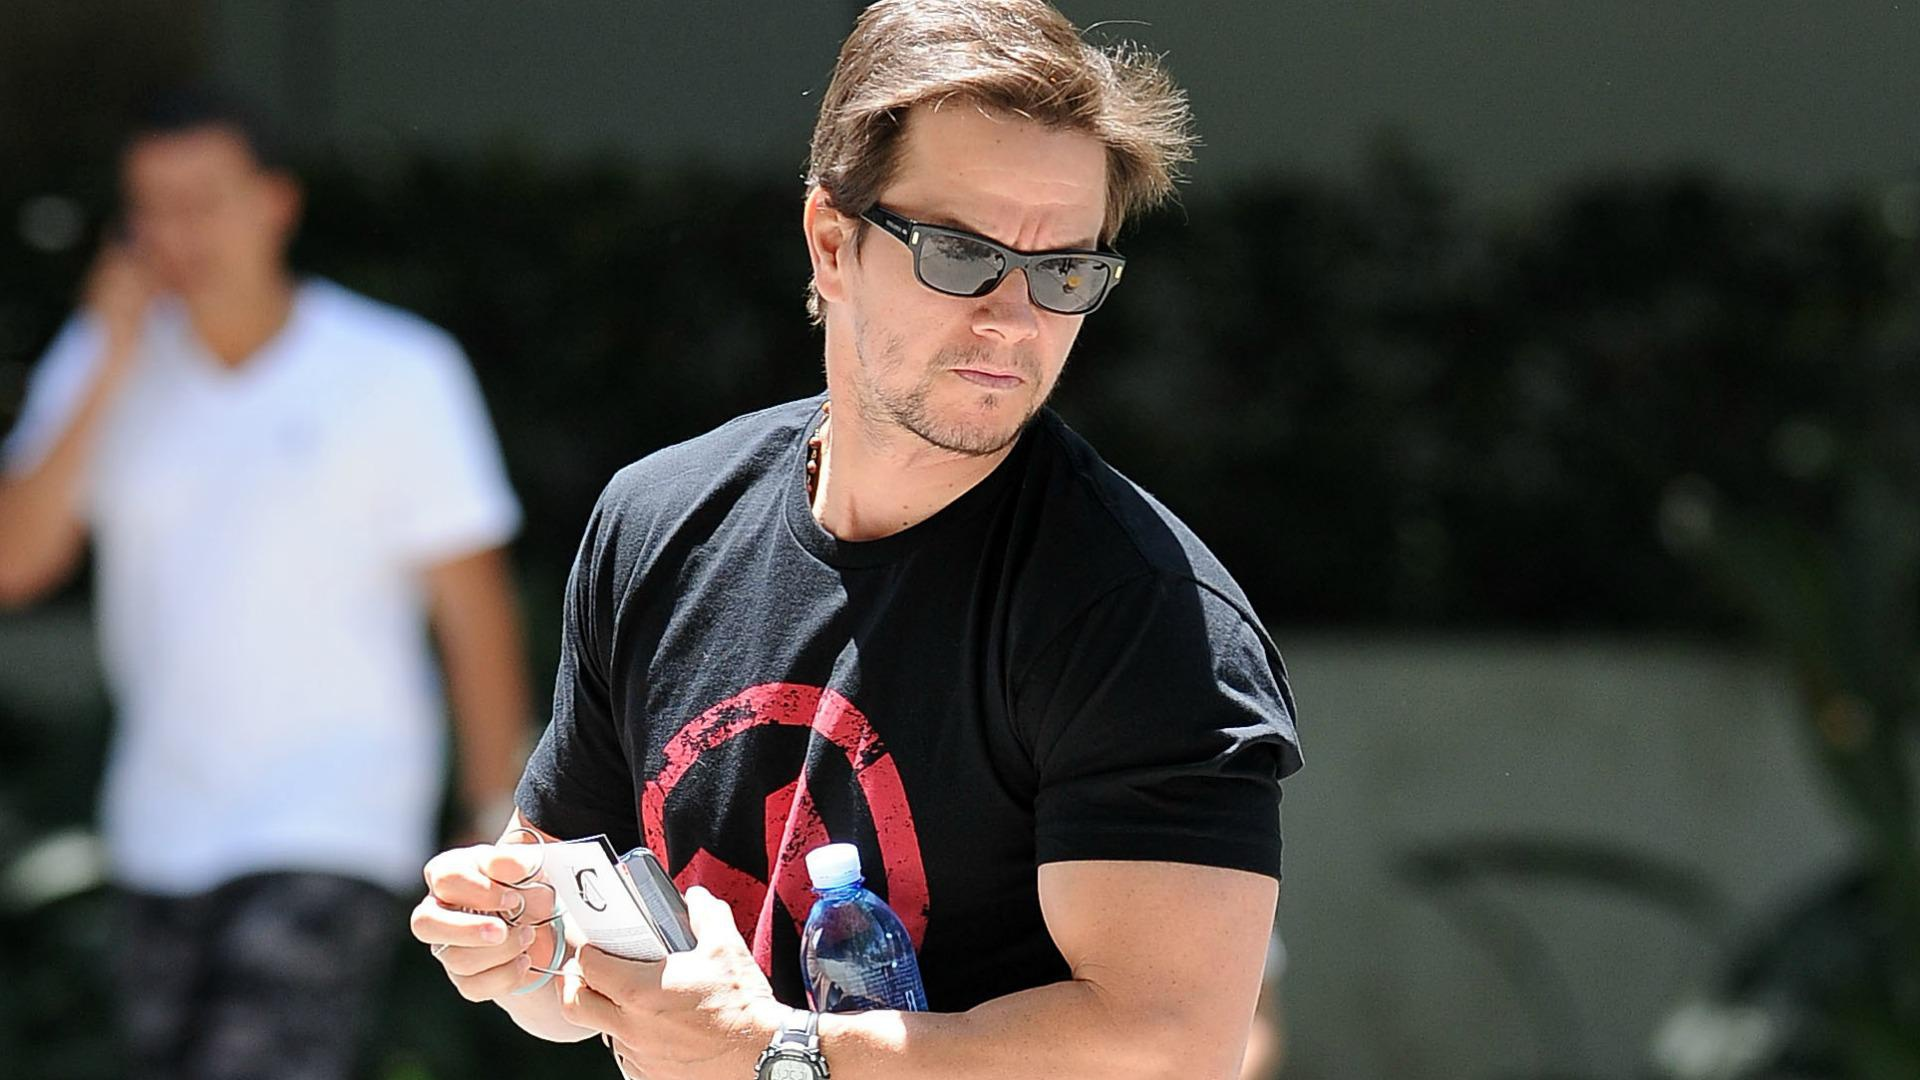 Mark Wahlberg lost 60 pounds on a miserable liquid diet